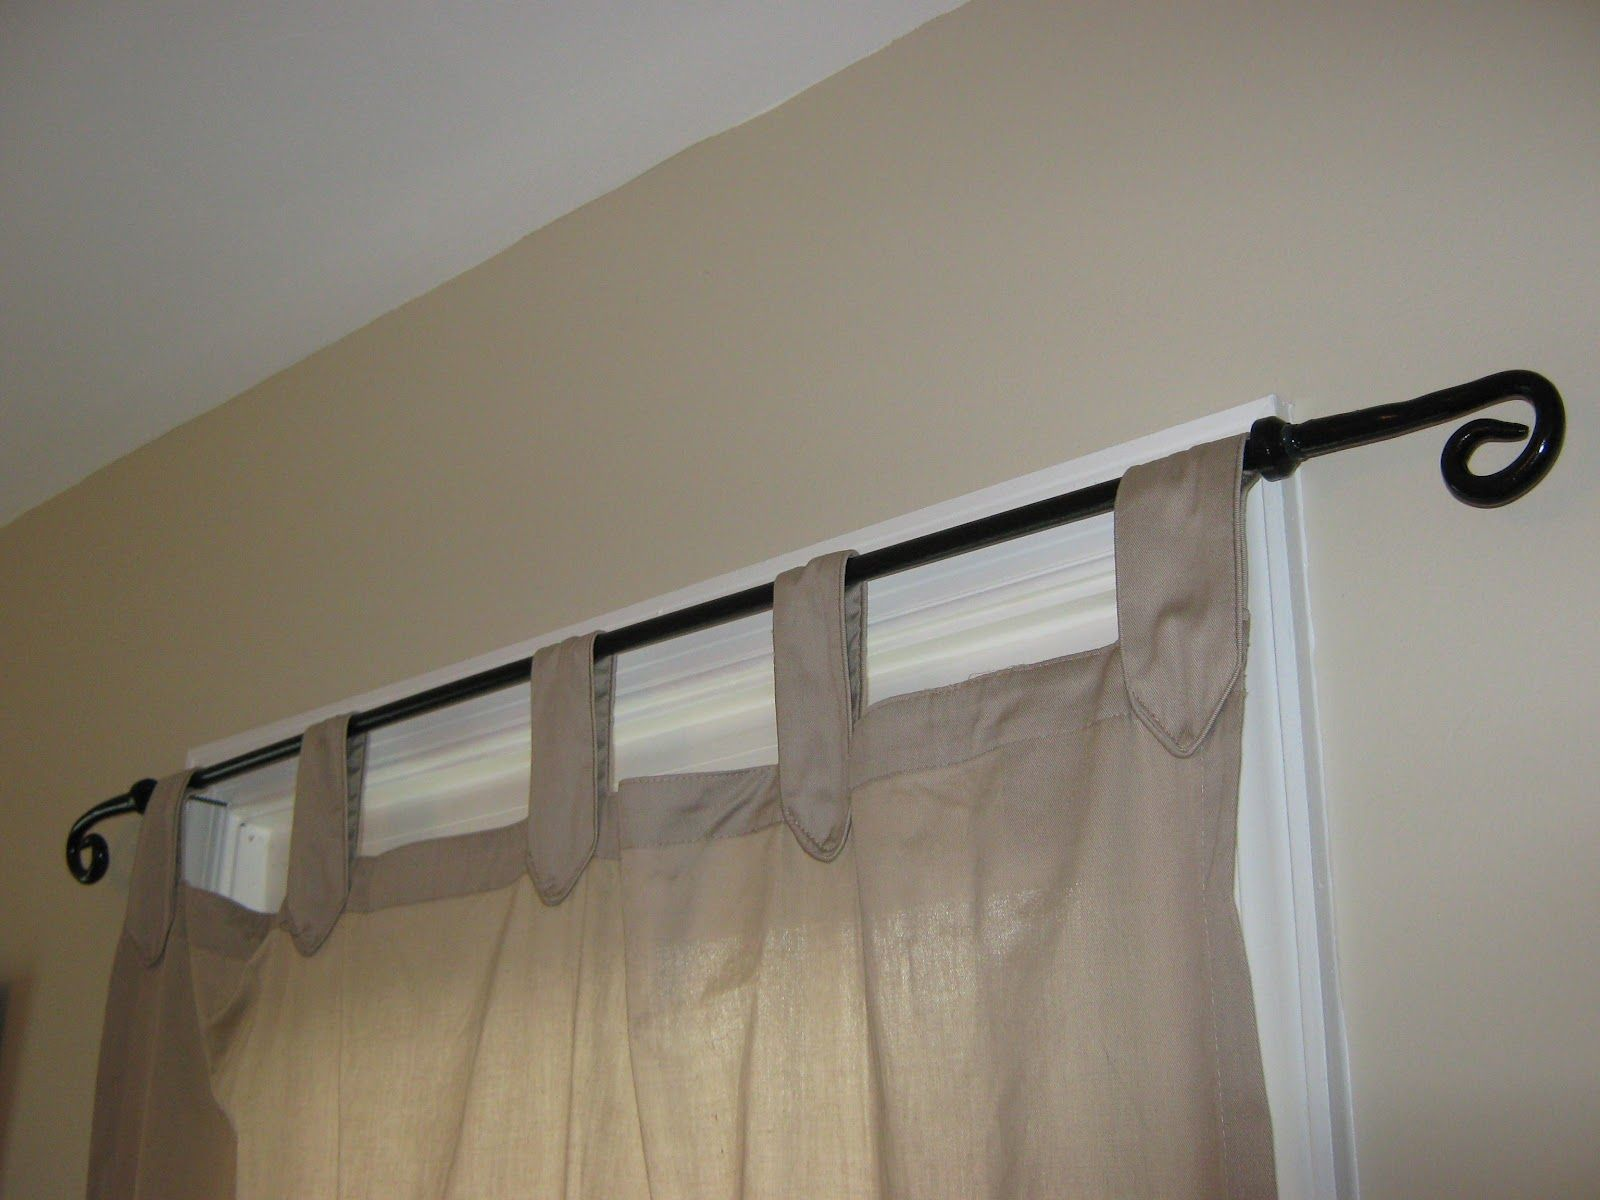 Wrought iron drapery rods - Wrought Iron Drapery Rods Wrought Iron Curtain Rods Hardware 17 Best Images About Bring New